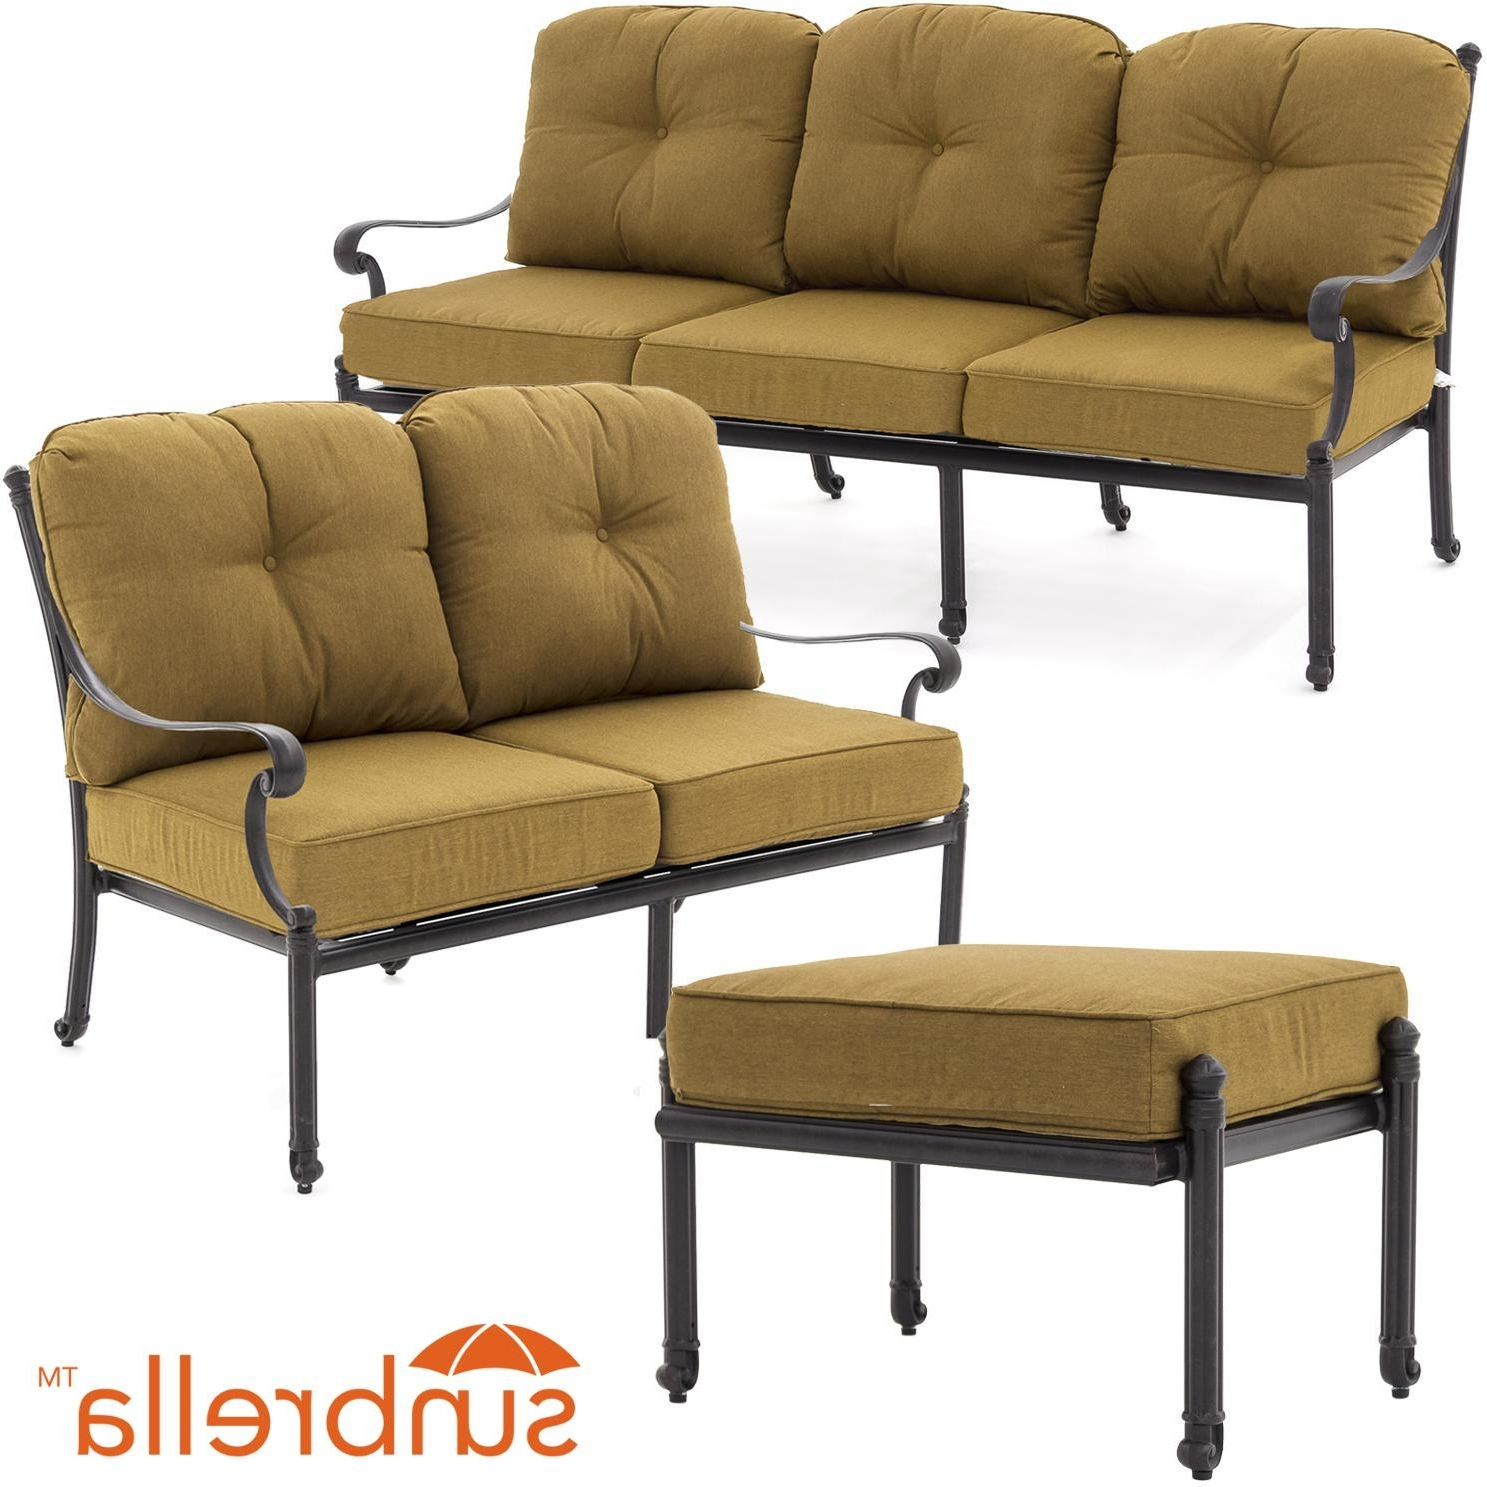 Patio Conversation Sets With Sunbrella Cushions Inside Well Known Evangeline 3 Piece Cast Aluminum Outdoor Conversation Set W (View 13 of 20)